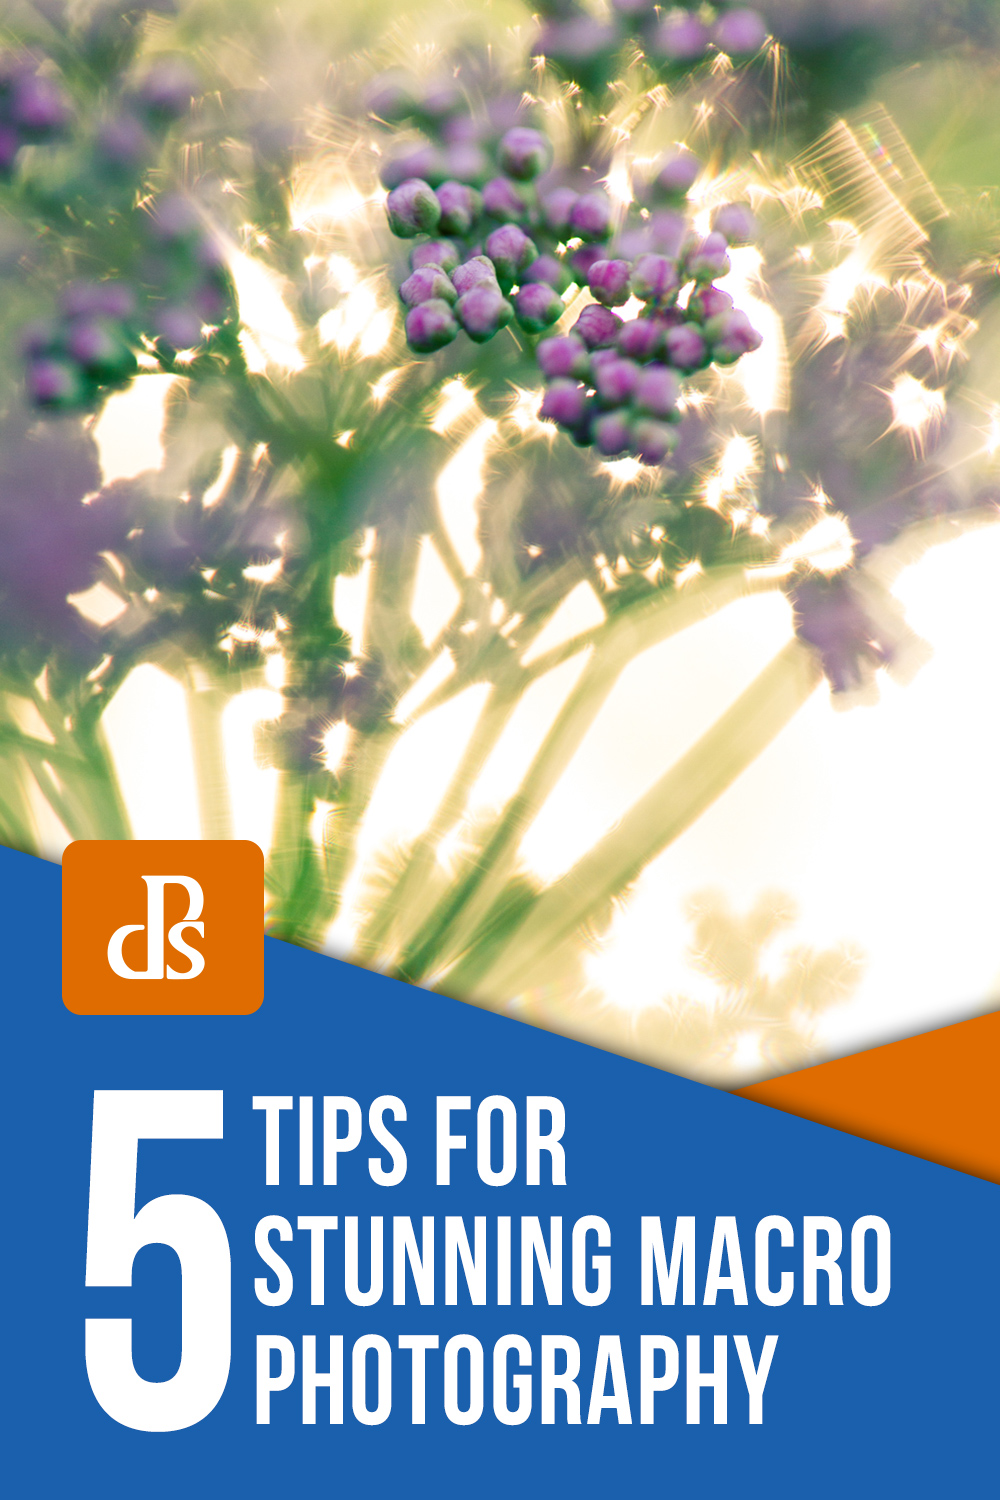 5 Tips for Stunning Macro Photography